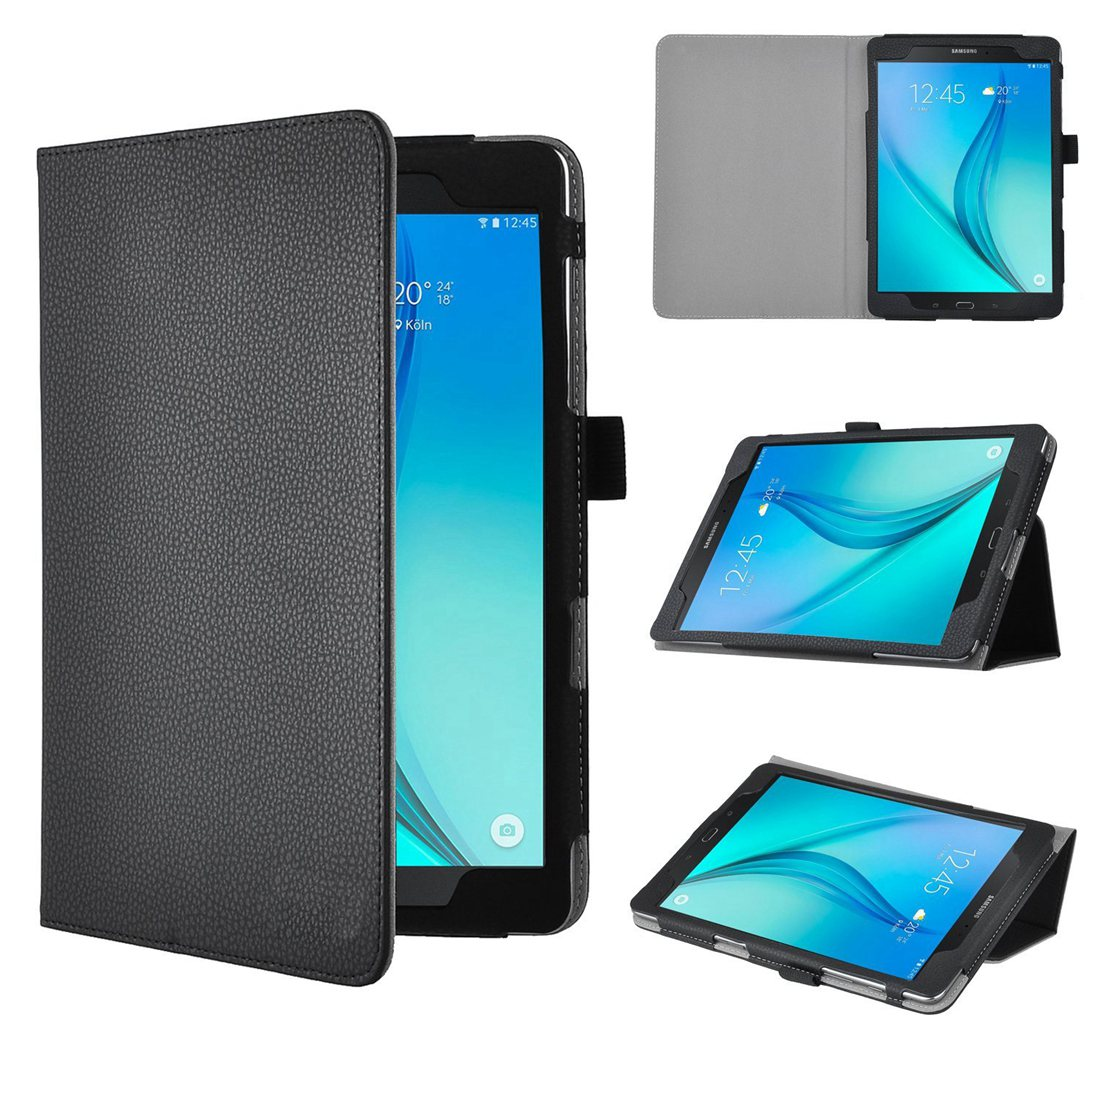 For Samsung Galaxy Tab S2 Nook 9.7-Inch Case - Ultra-Slim and Ultra-light PU Leather Folio Slim-Book Case Stand Cover